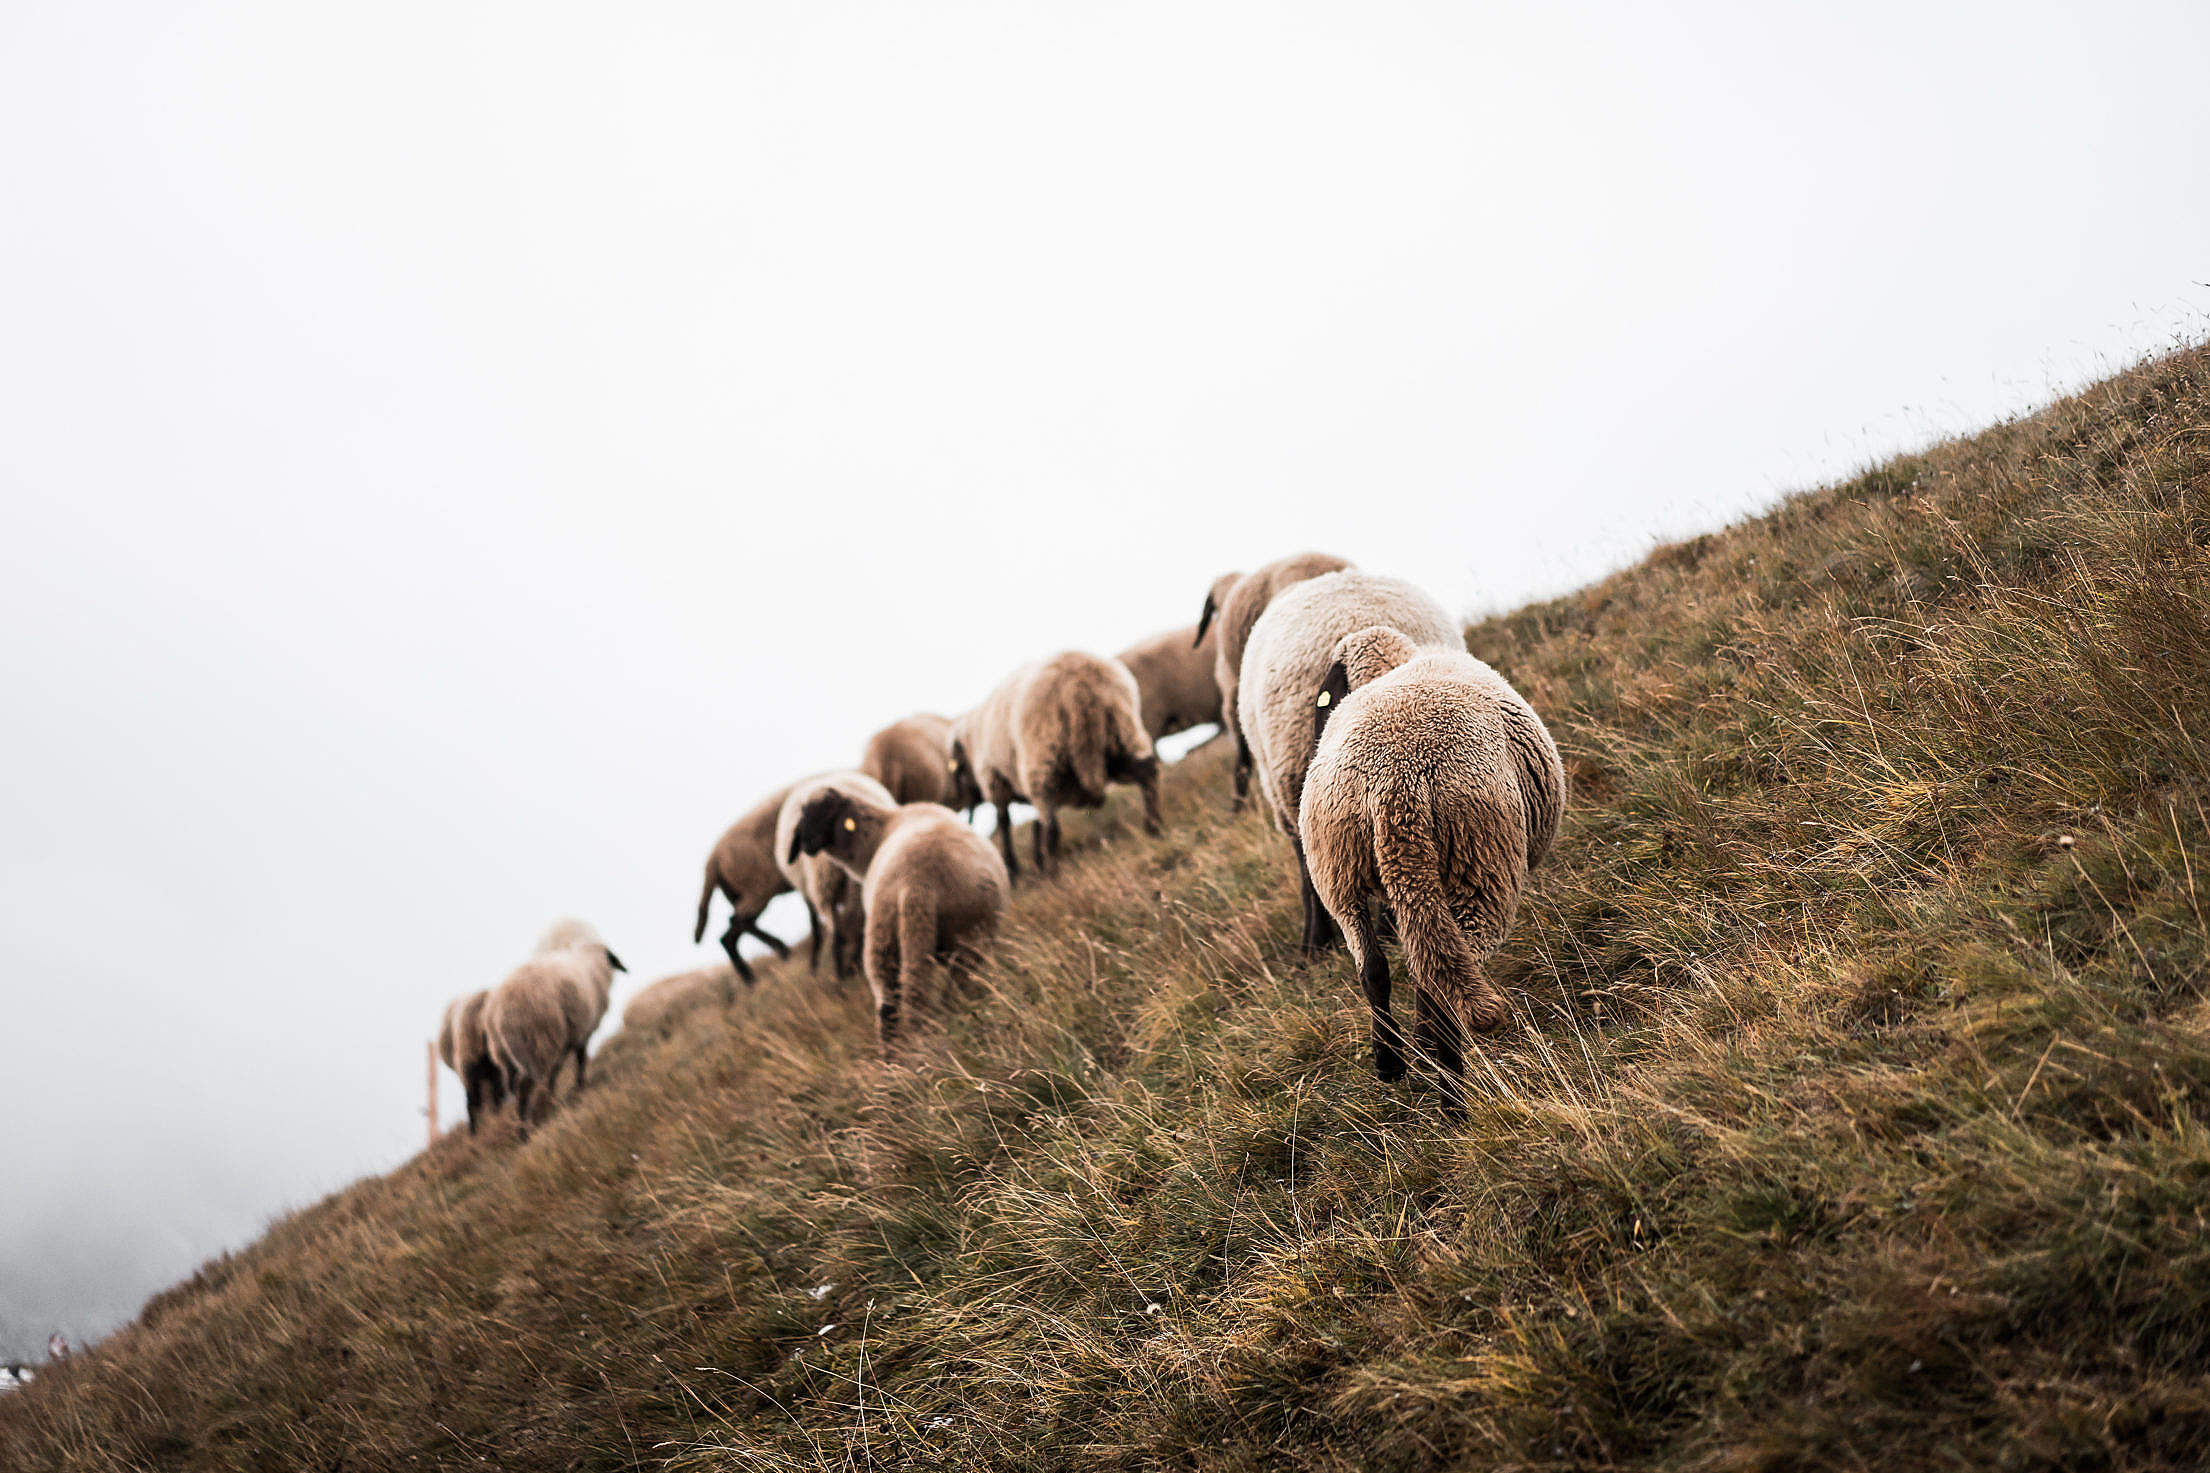 Flock of Sheep on a Steep Hill Free Stock Photo